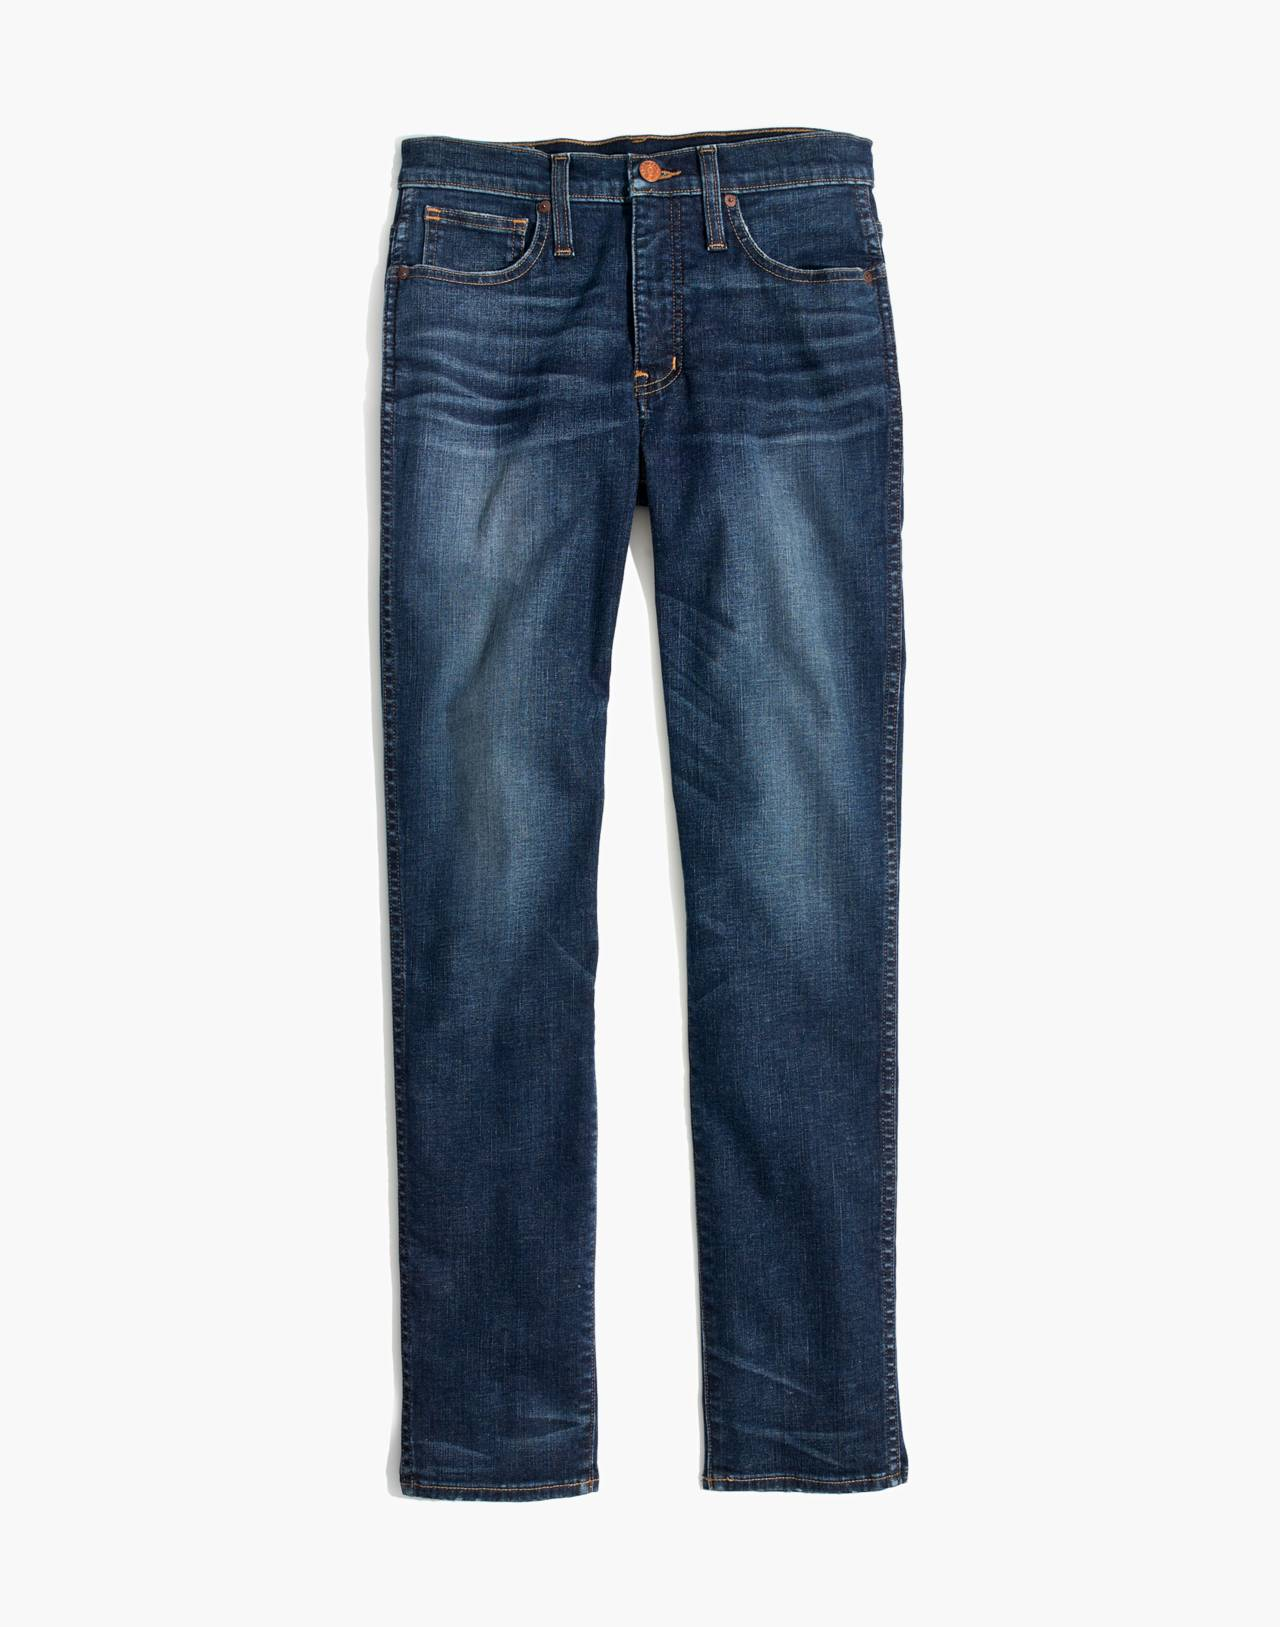 Slim Straight Jeans in William Wash in william wash image 4